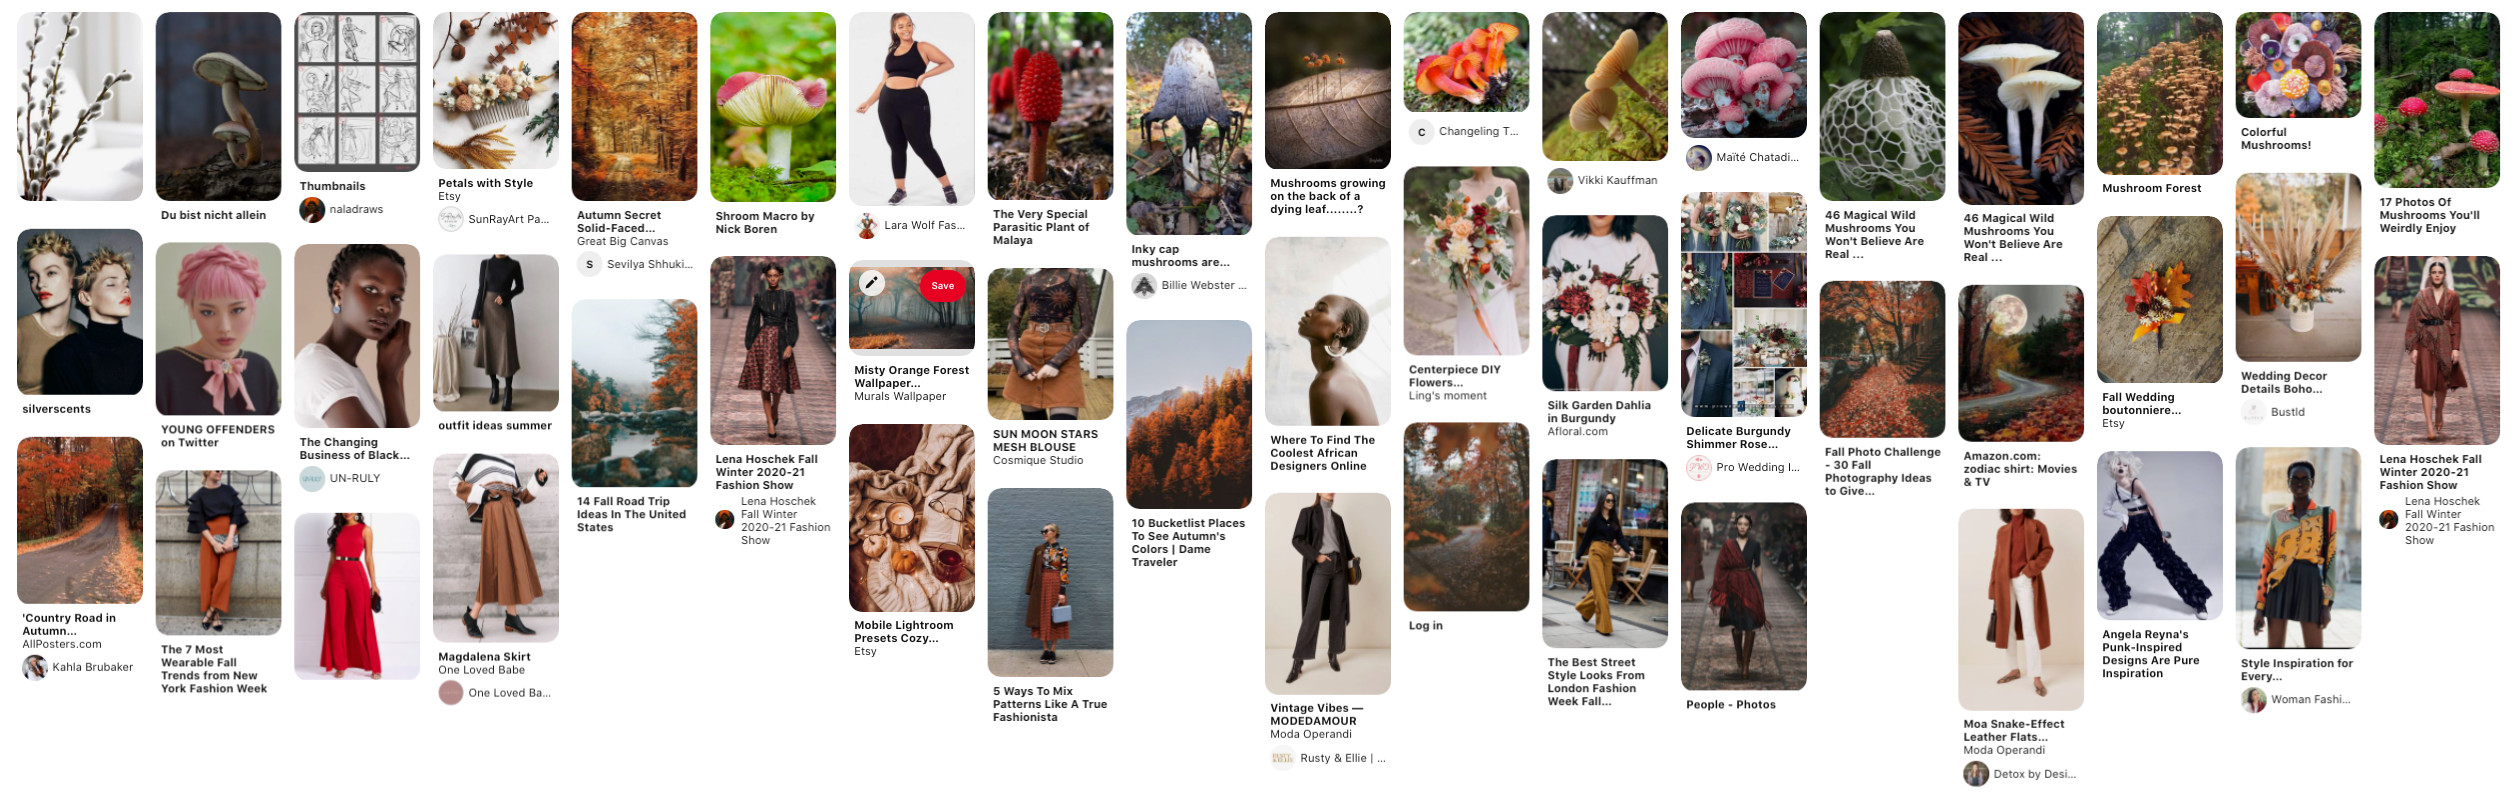 My Pinterest mood board for this project!